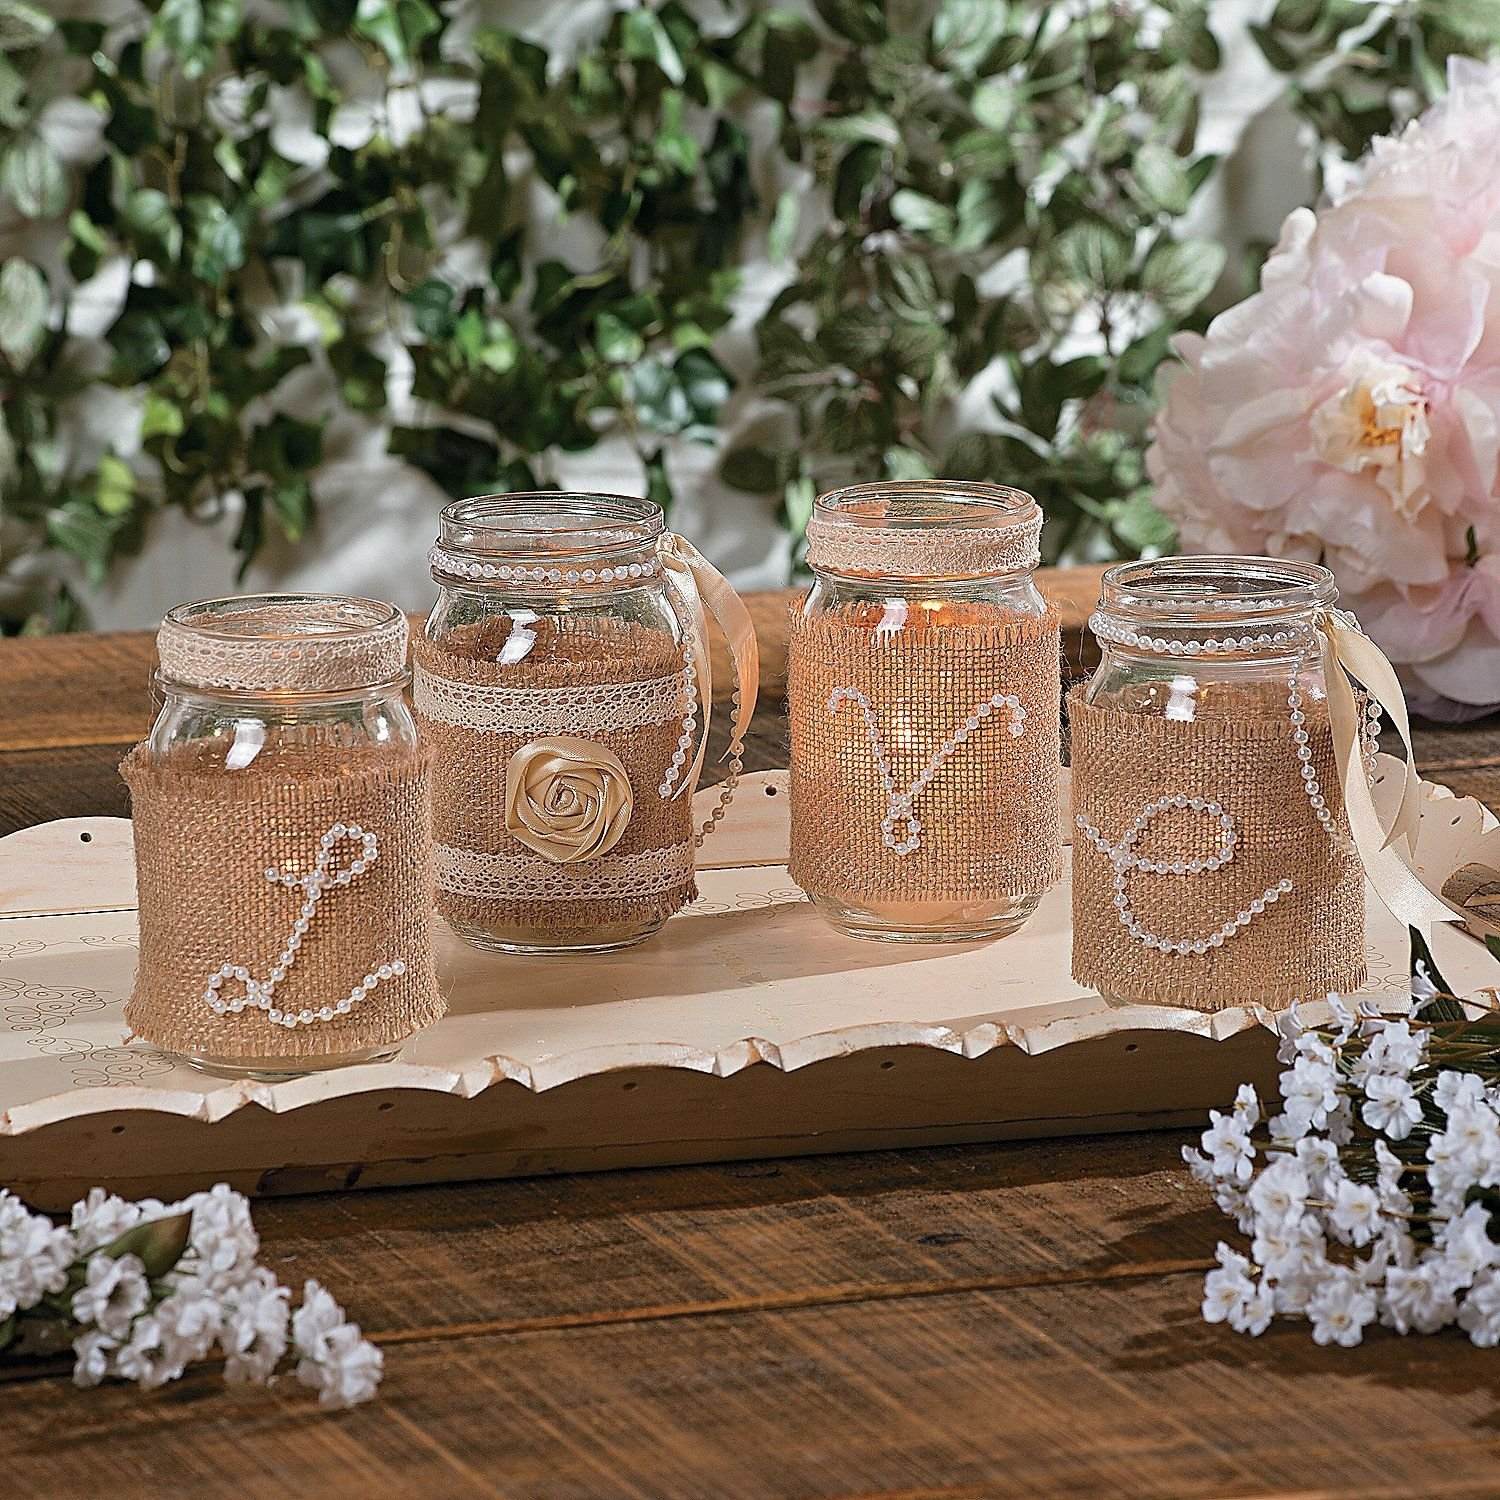 diy-wedding centerpieces, using pearls, burlap, ribbon and mason